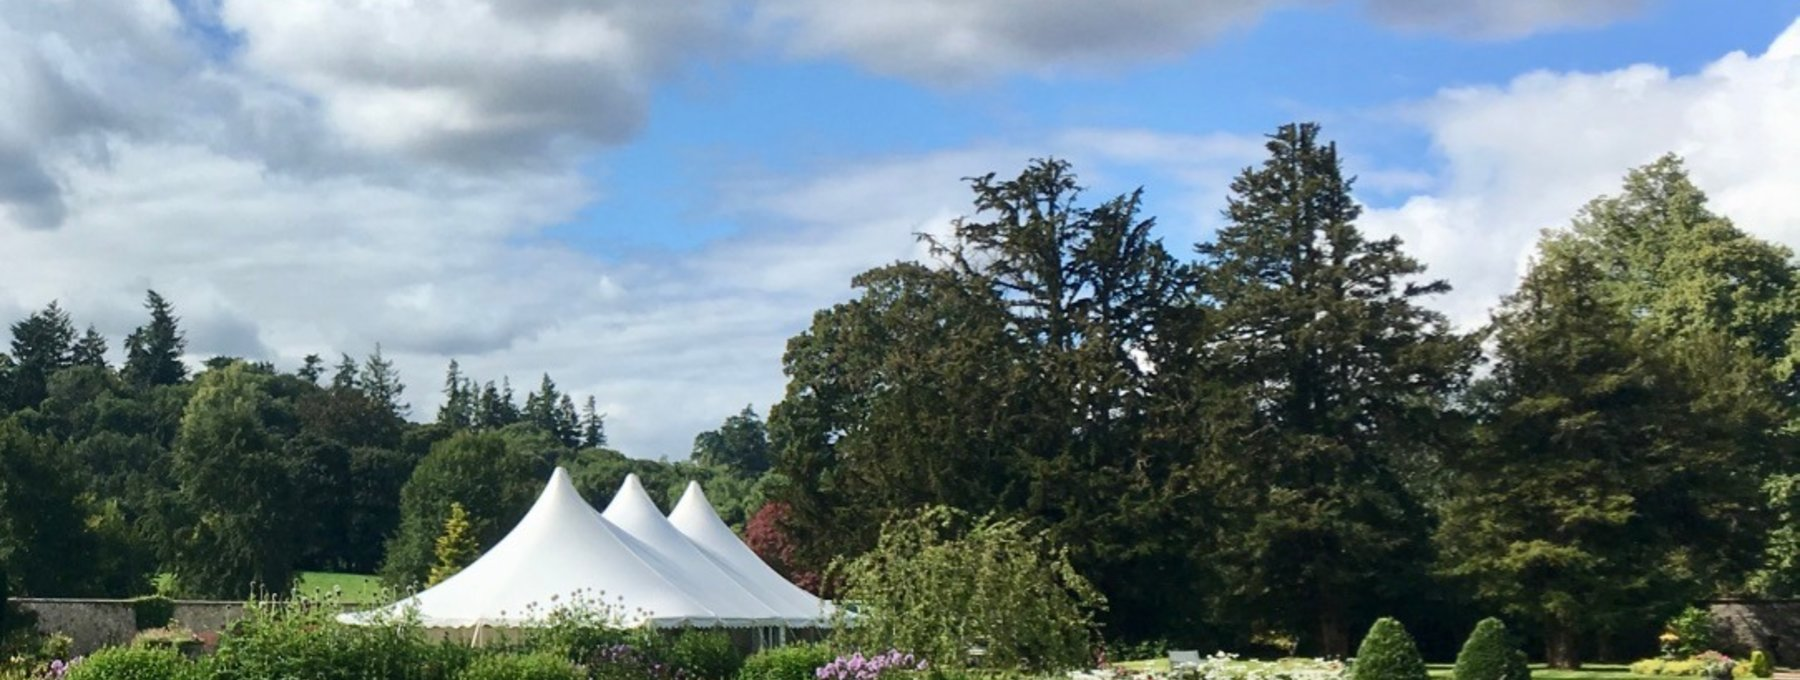 Marquee in the walled garden - There's plenty of room for a large marquee in the walled garden at Murthly Estate for your wedding reception, corporate event or private hire. (© Murthly Estate)